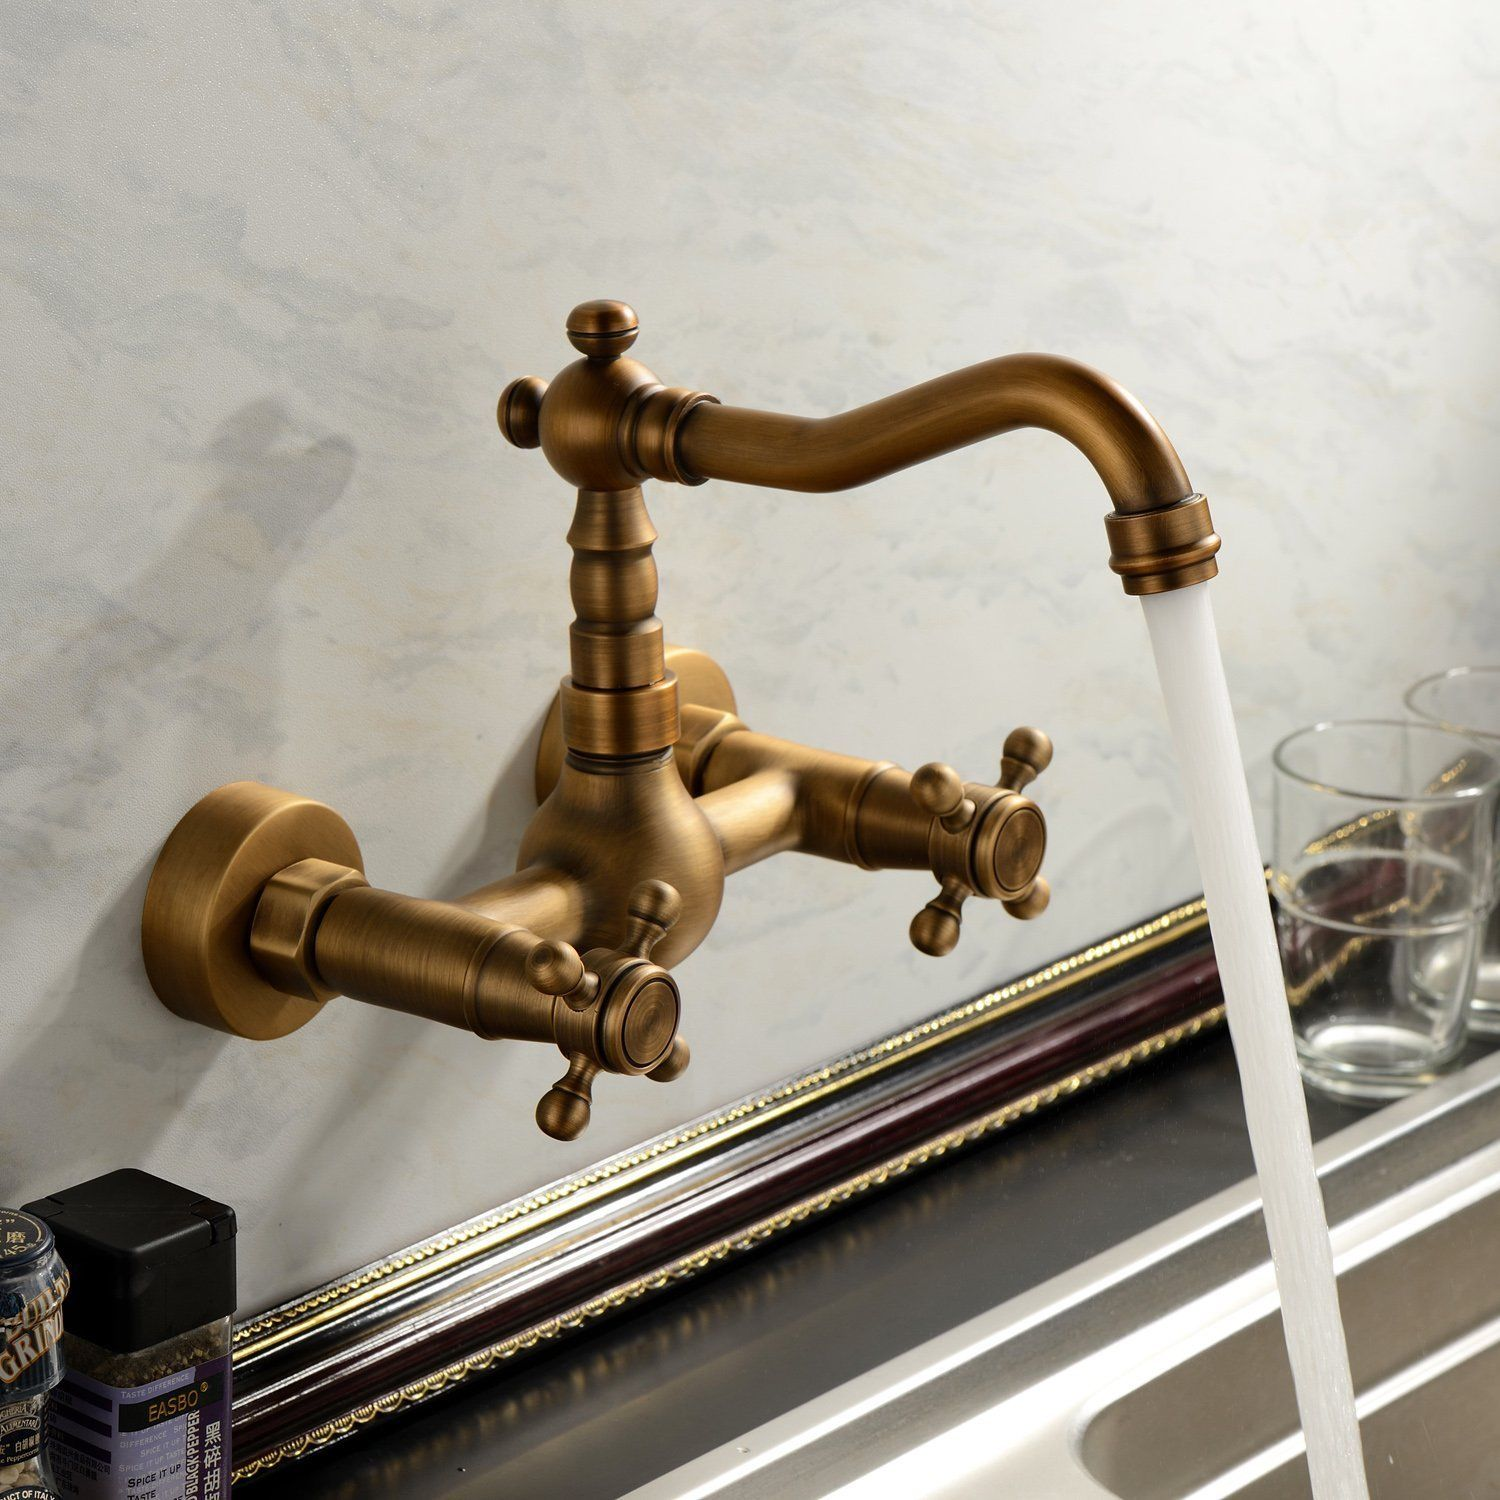 Antique Brass Wall Mounted Swivel Spout Bathroom Sink Faucet Double Handle Mixer Tap ZD515